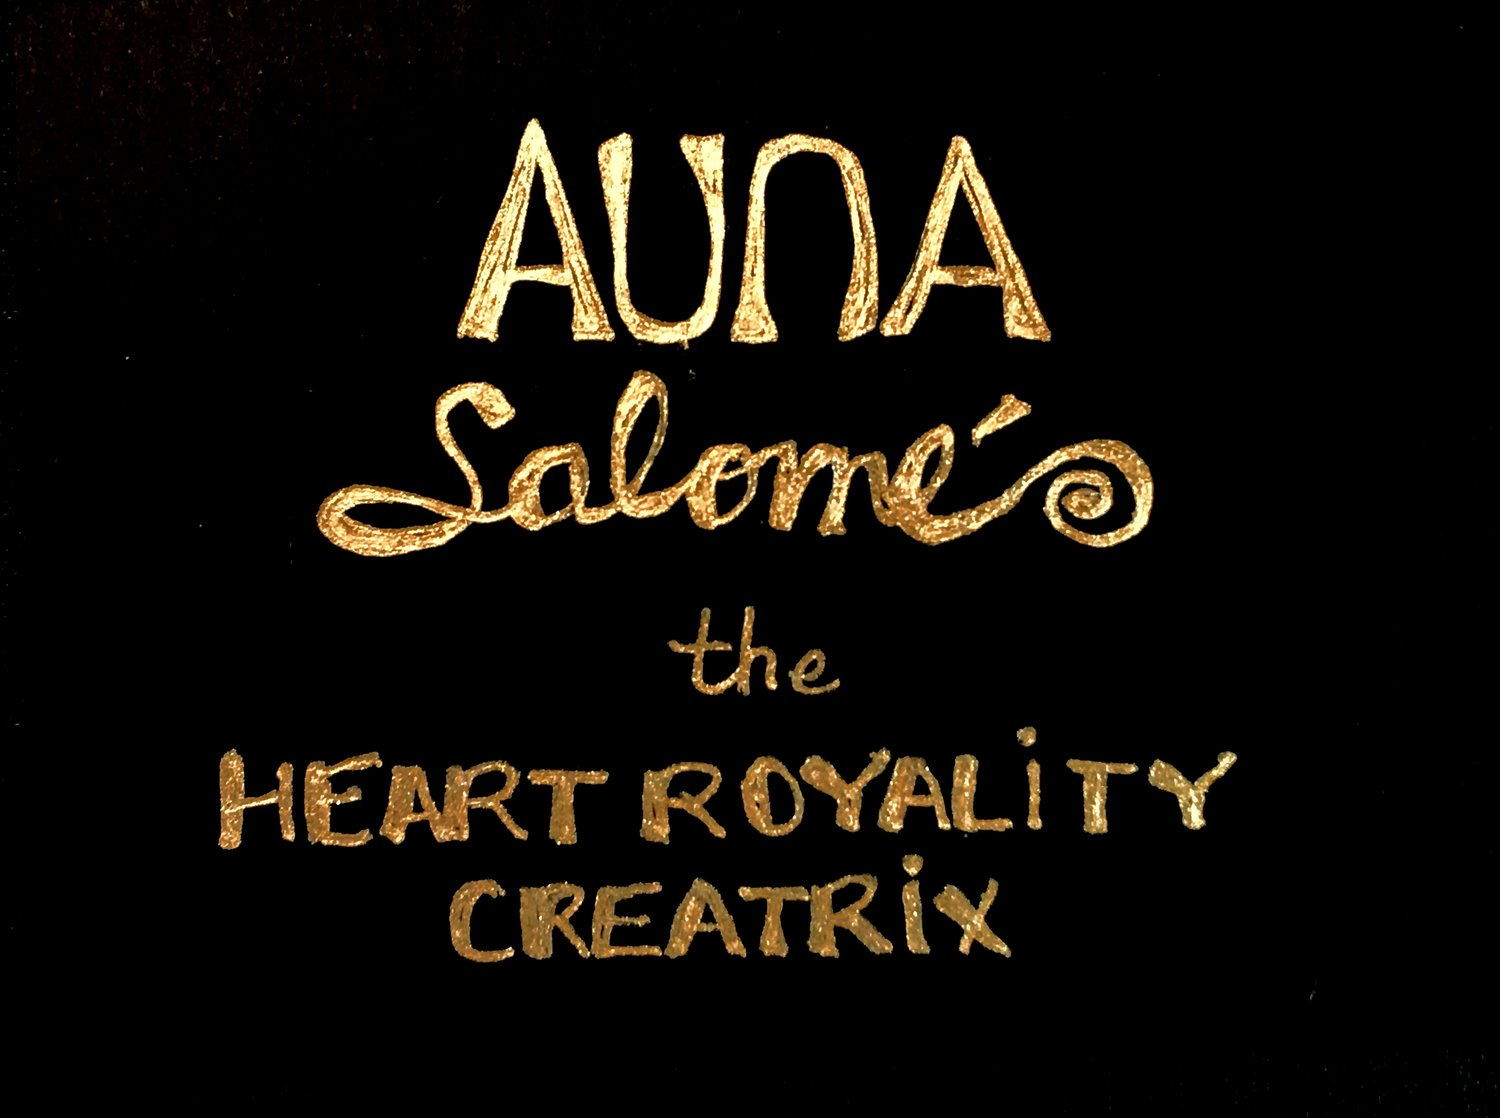 Auna Salomé, The Heart Royality Creatrix